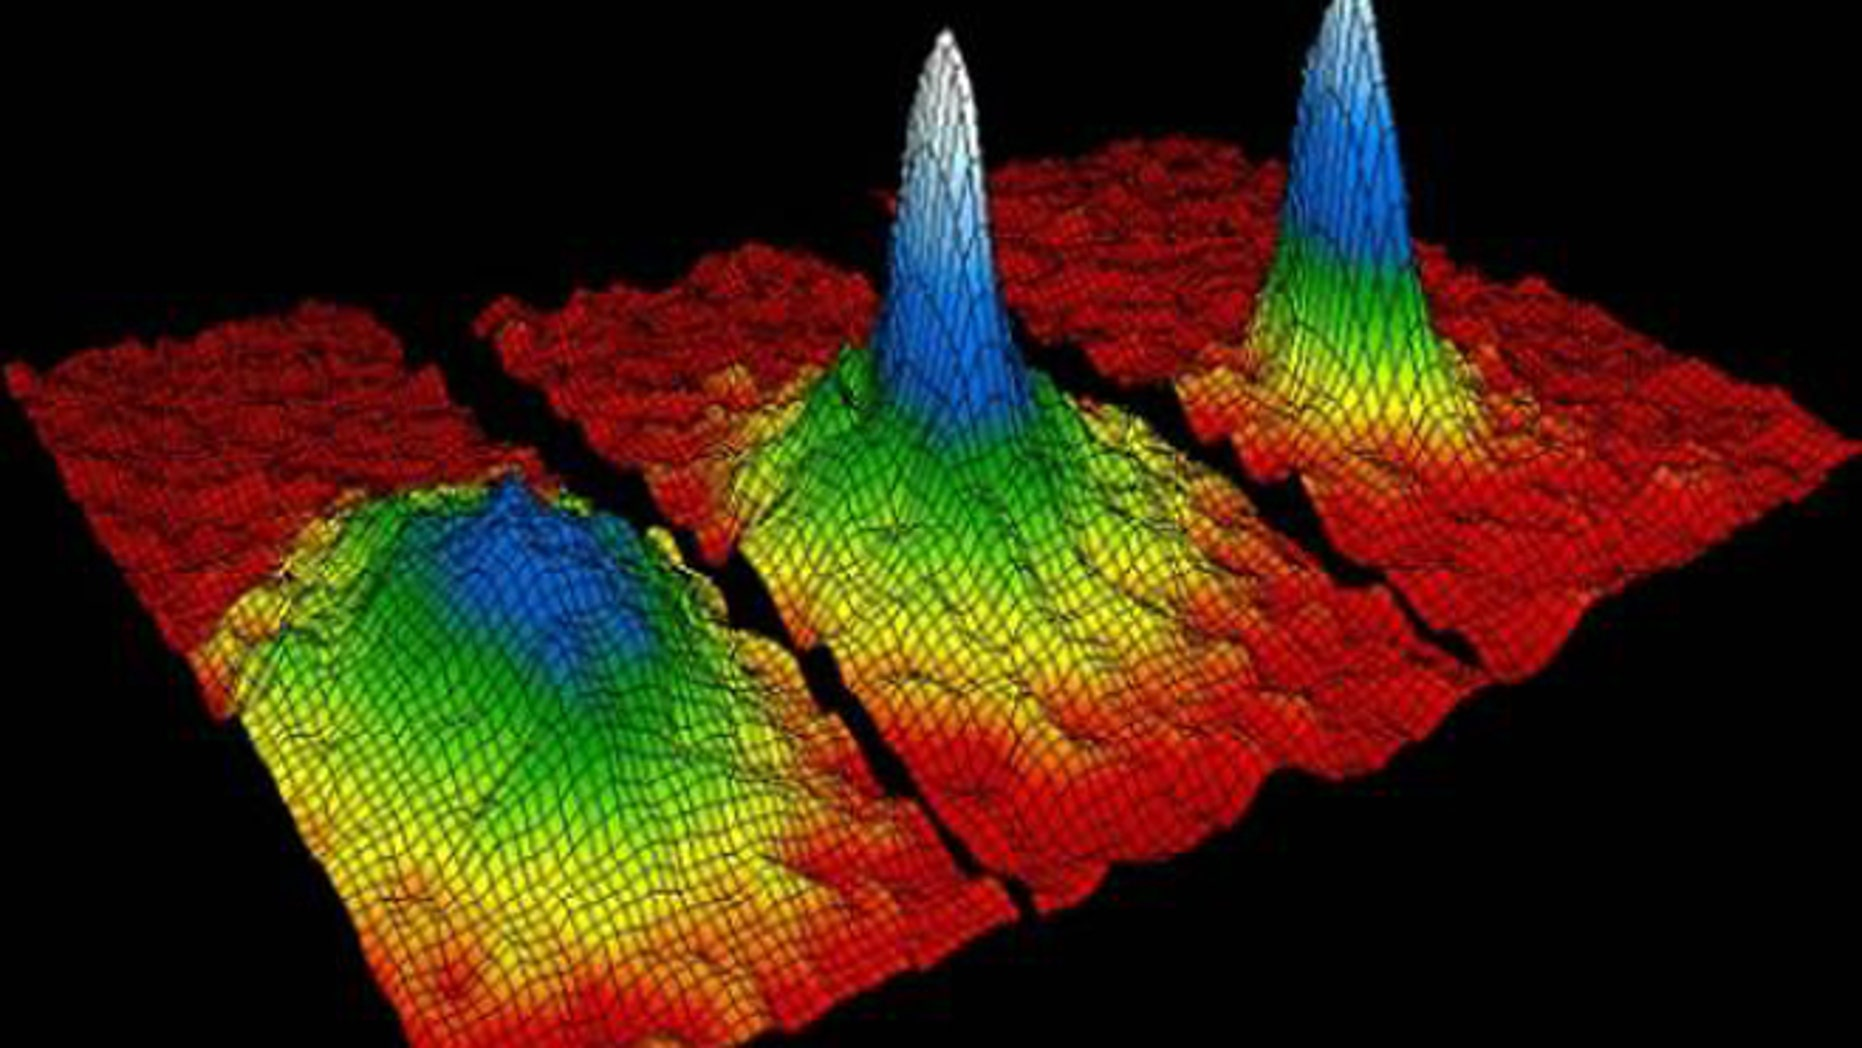 Known as Bose-Einstein condensates (BECs) and consisting of just a cluster of atoms, this remarkable form of matter has been impossible to measure and control at the same time.